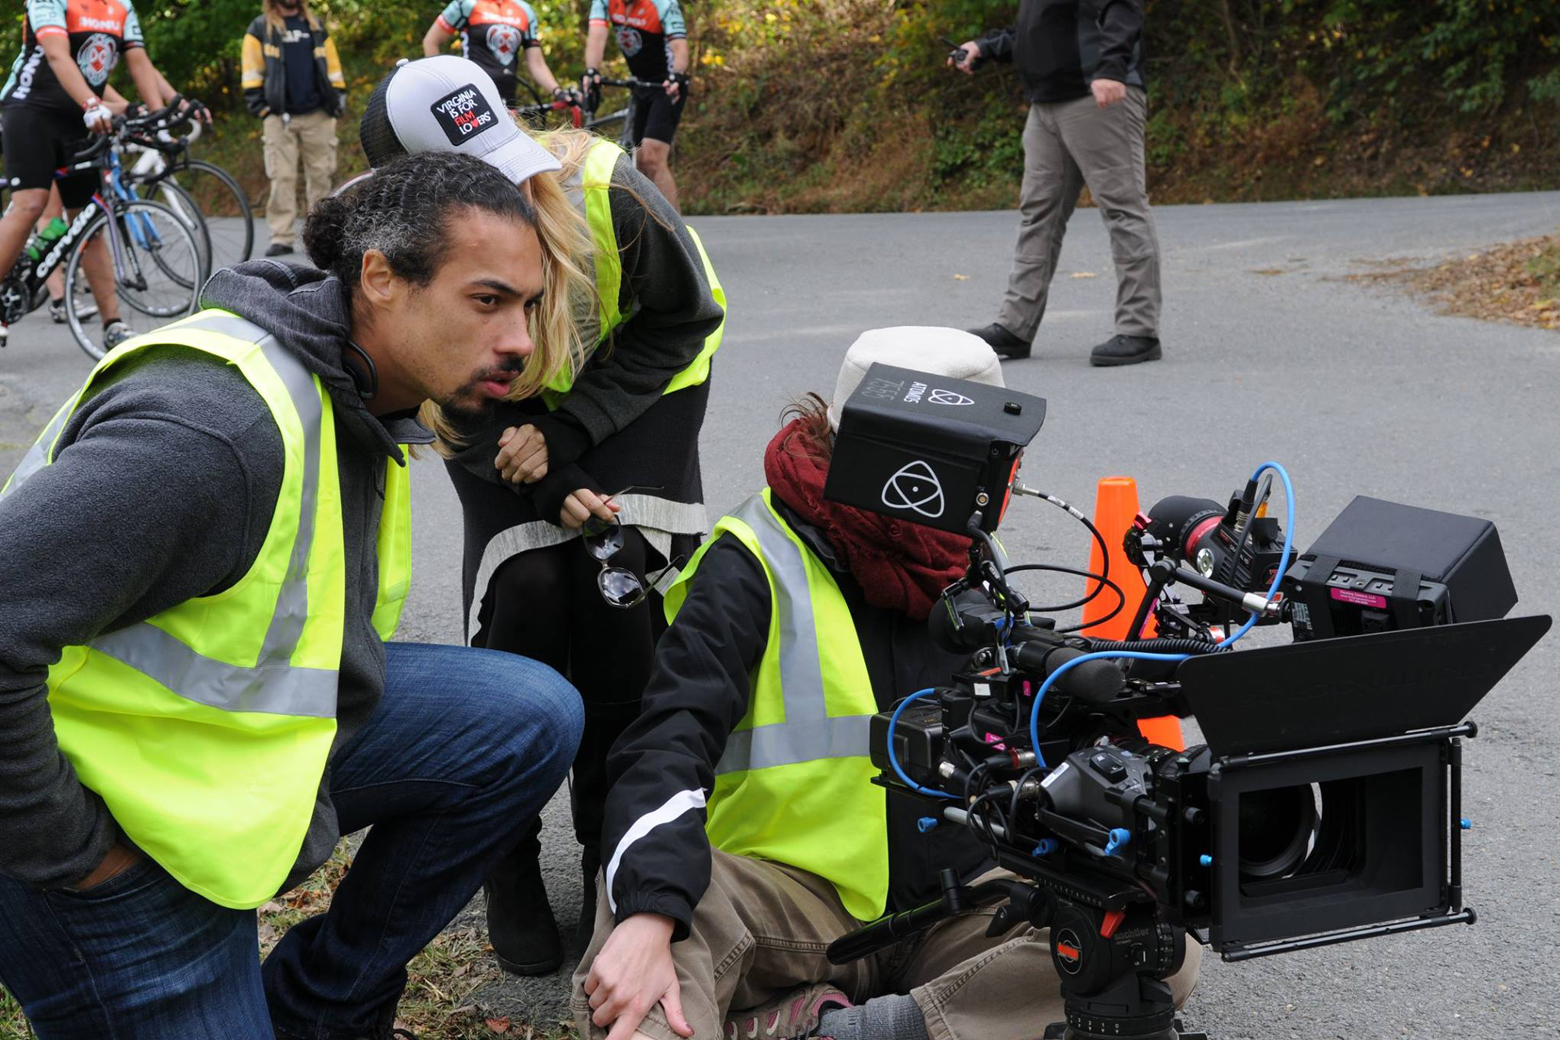 Local filmmaker's first feature film is also a first for triathlons